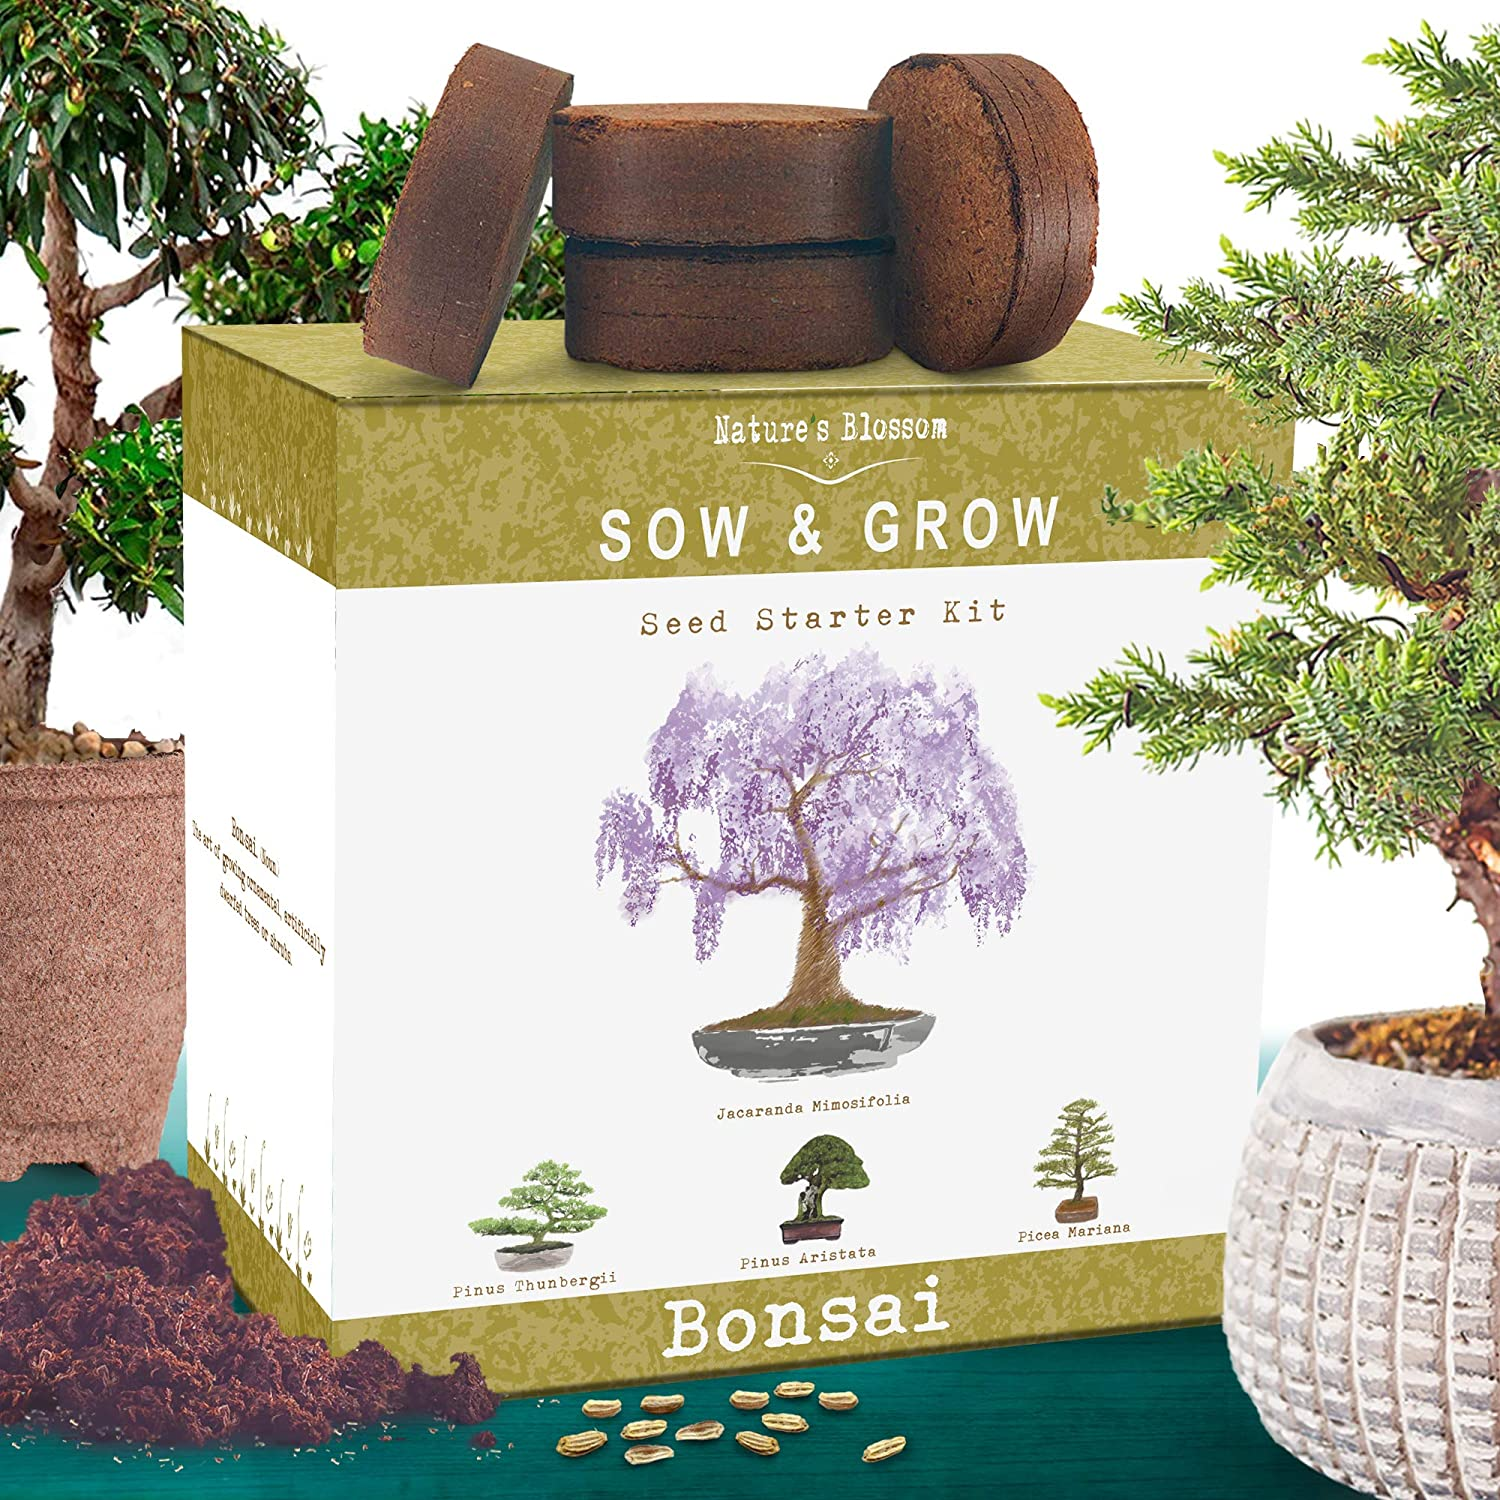 Nature's Blossom Bonsai Tree Kit  Grow 4 Types of Miniature Trees From  Seed  A Complete Indoor Gardening Seed Starter Set with Organic Tree Seeds,